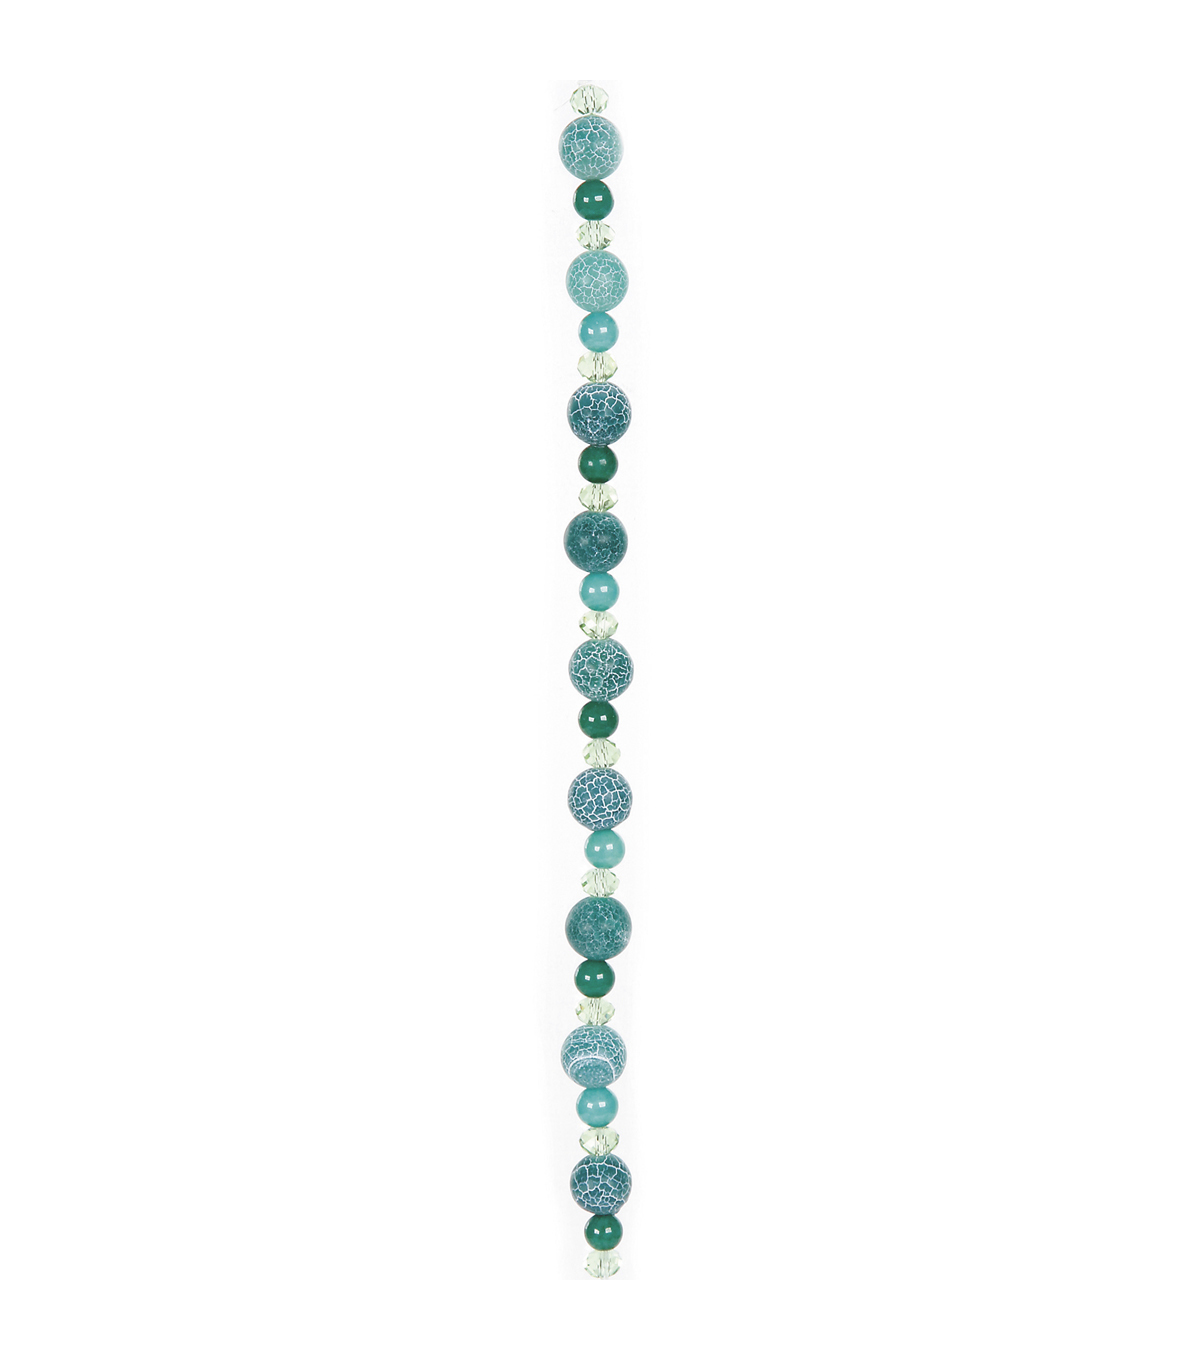 7\u0022 Green Crackle Strung Glass Beads - 10mm Round